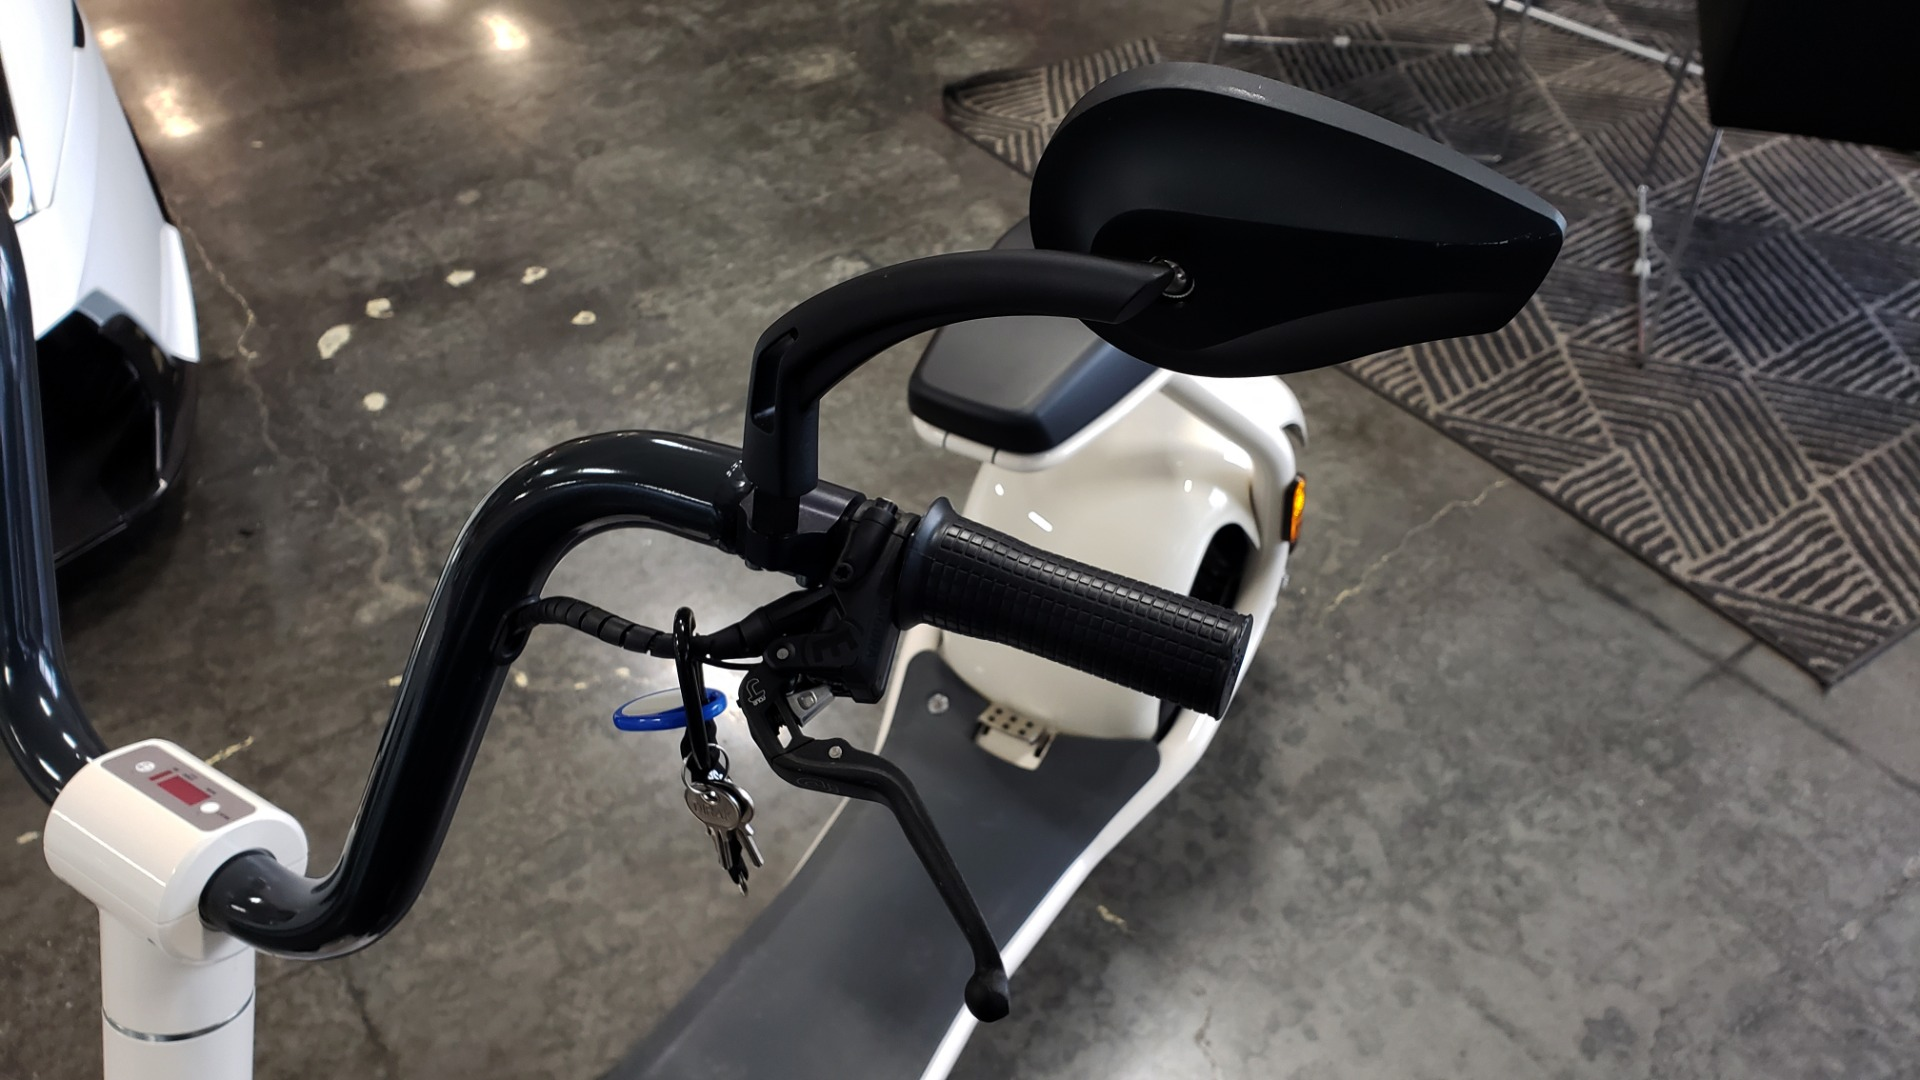 Used 2018 SCROOSER ELECTRIC SCOOTER SELF BALANCED / FOAM WHITE / 15.5 MPH / 34 MI RANGE for sale $1,699 at Formula Imports in Charlotte NC 28227 15